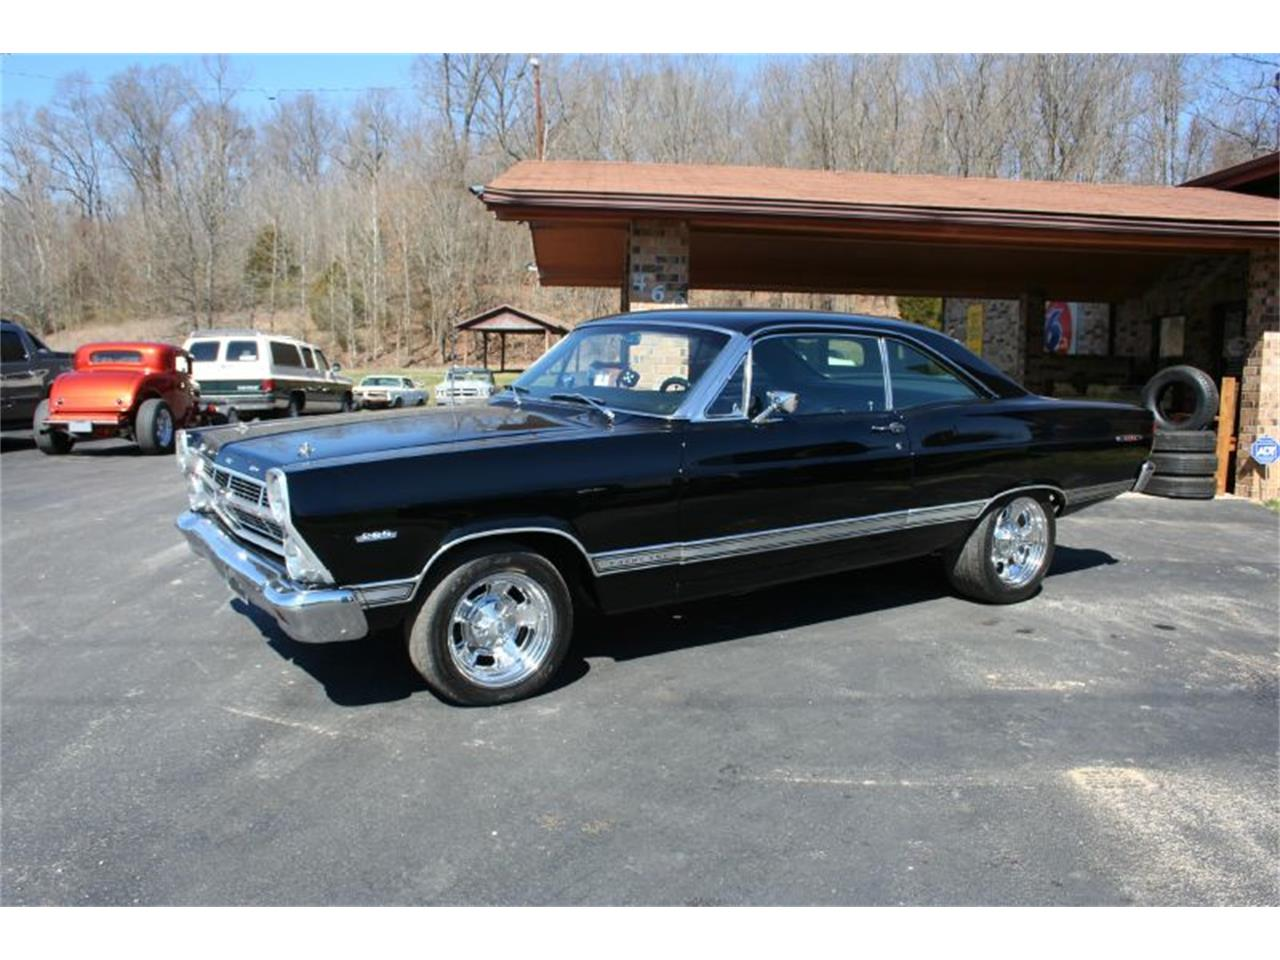 Large picture of 67 fairlane nkq8